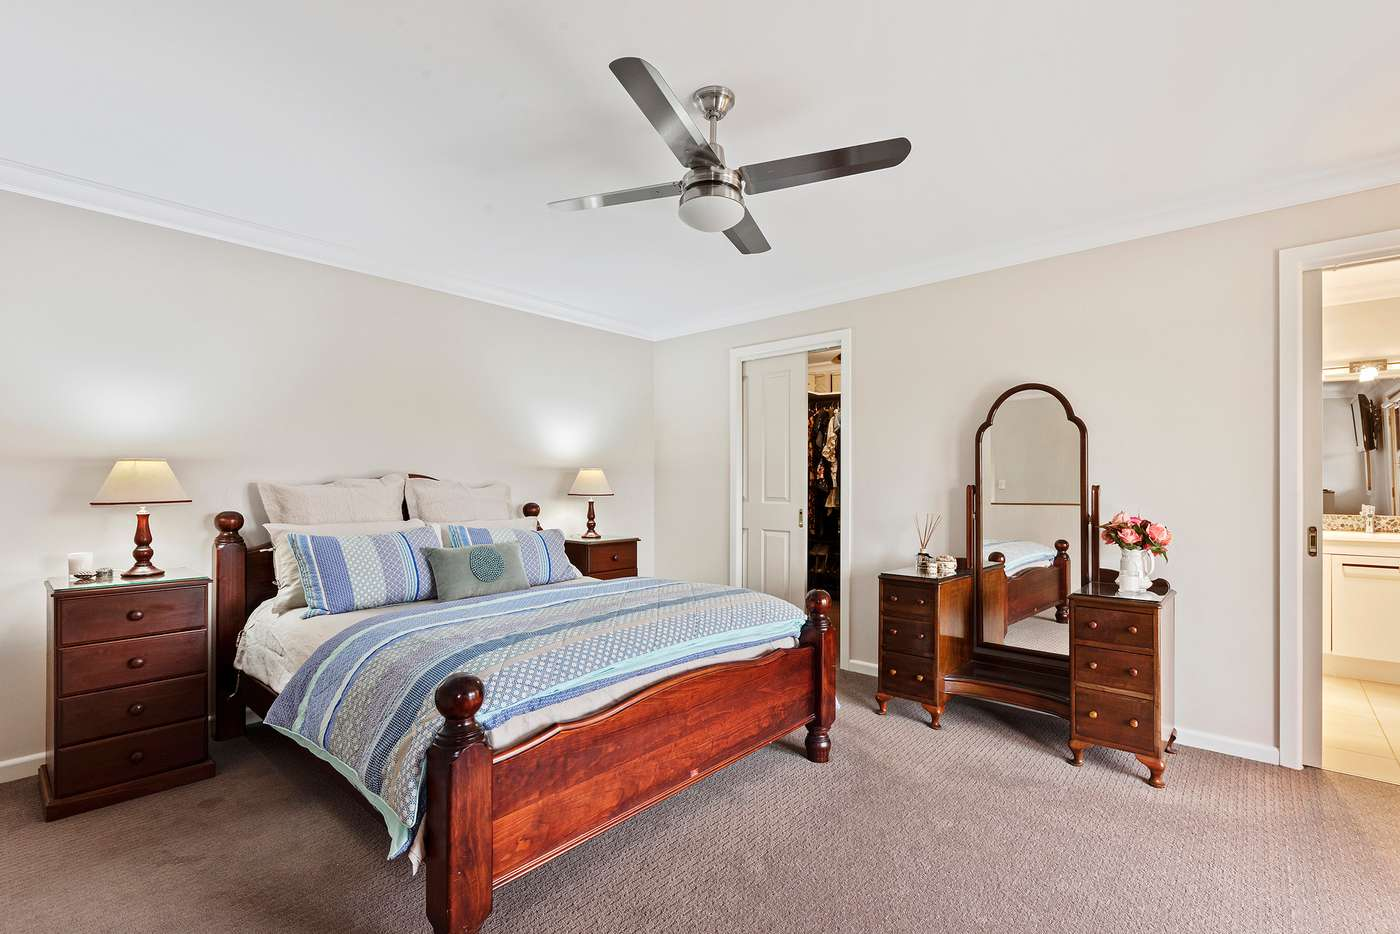 Sixth view of Homely house listing, 240 Nankervis Road, Mandurang VIC 3551